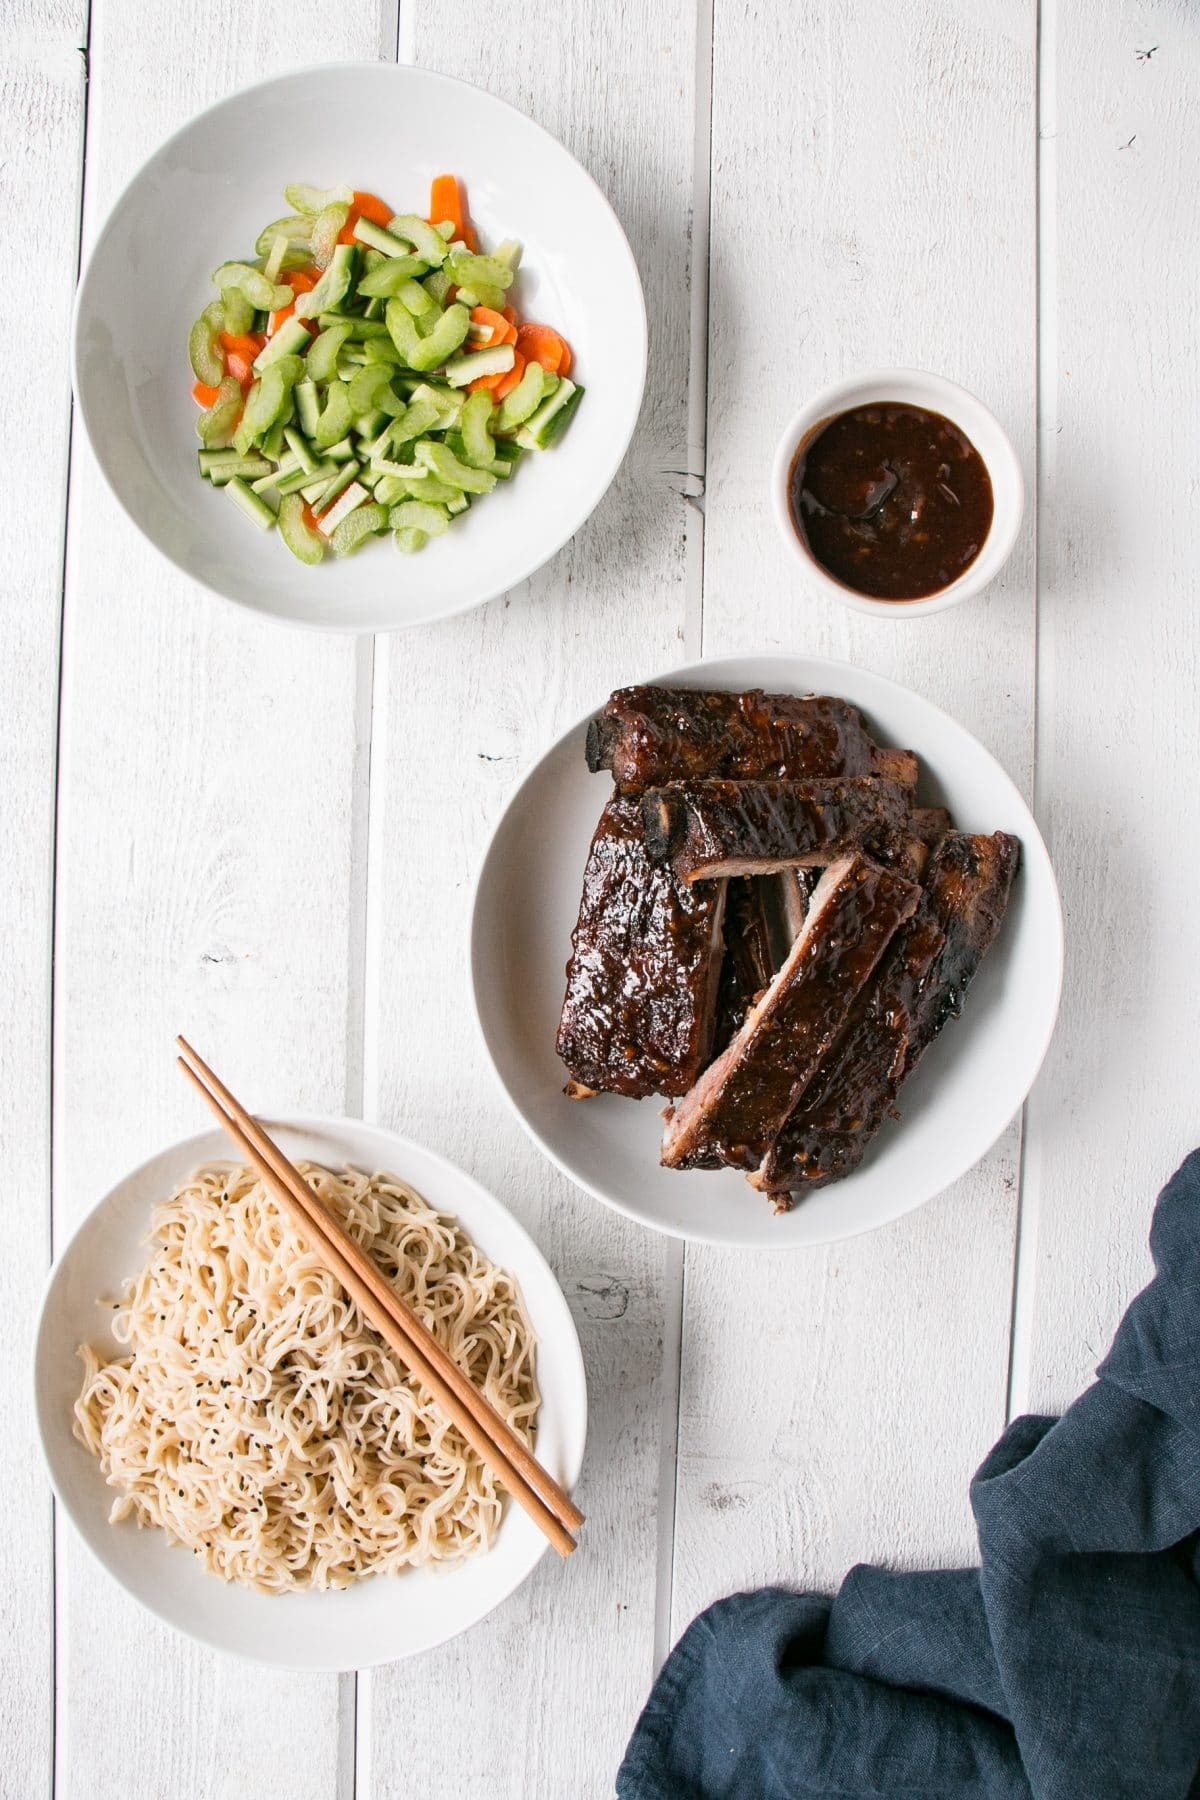 Sticky Asian Ribs made in the Slow Cooker or Instant Pot for 2 truly easy ways to having ribs for dinner! #ribs #slowcookerribs #instantpot #instantpotribs #slowcooker